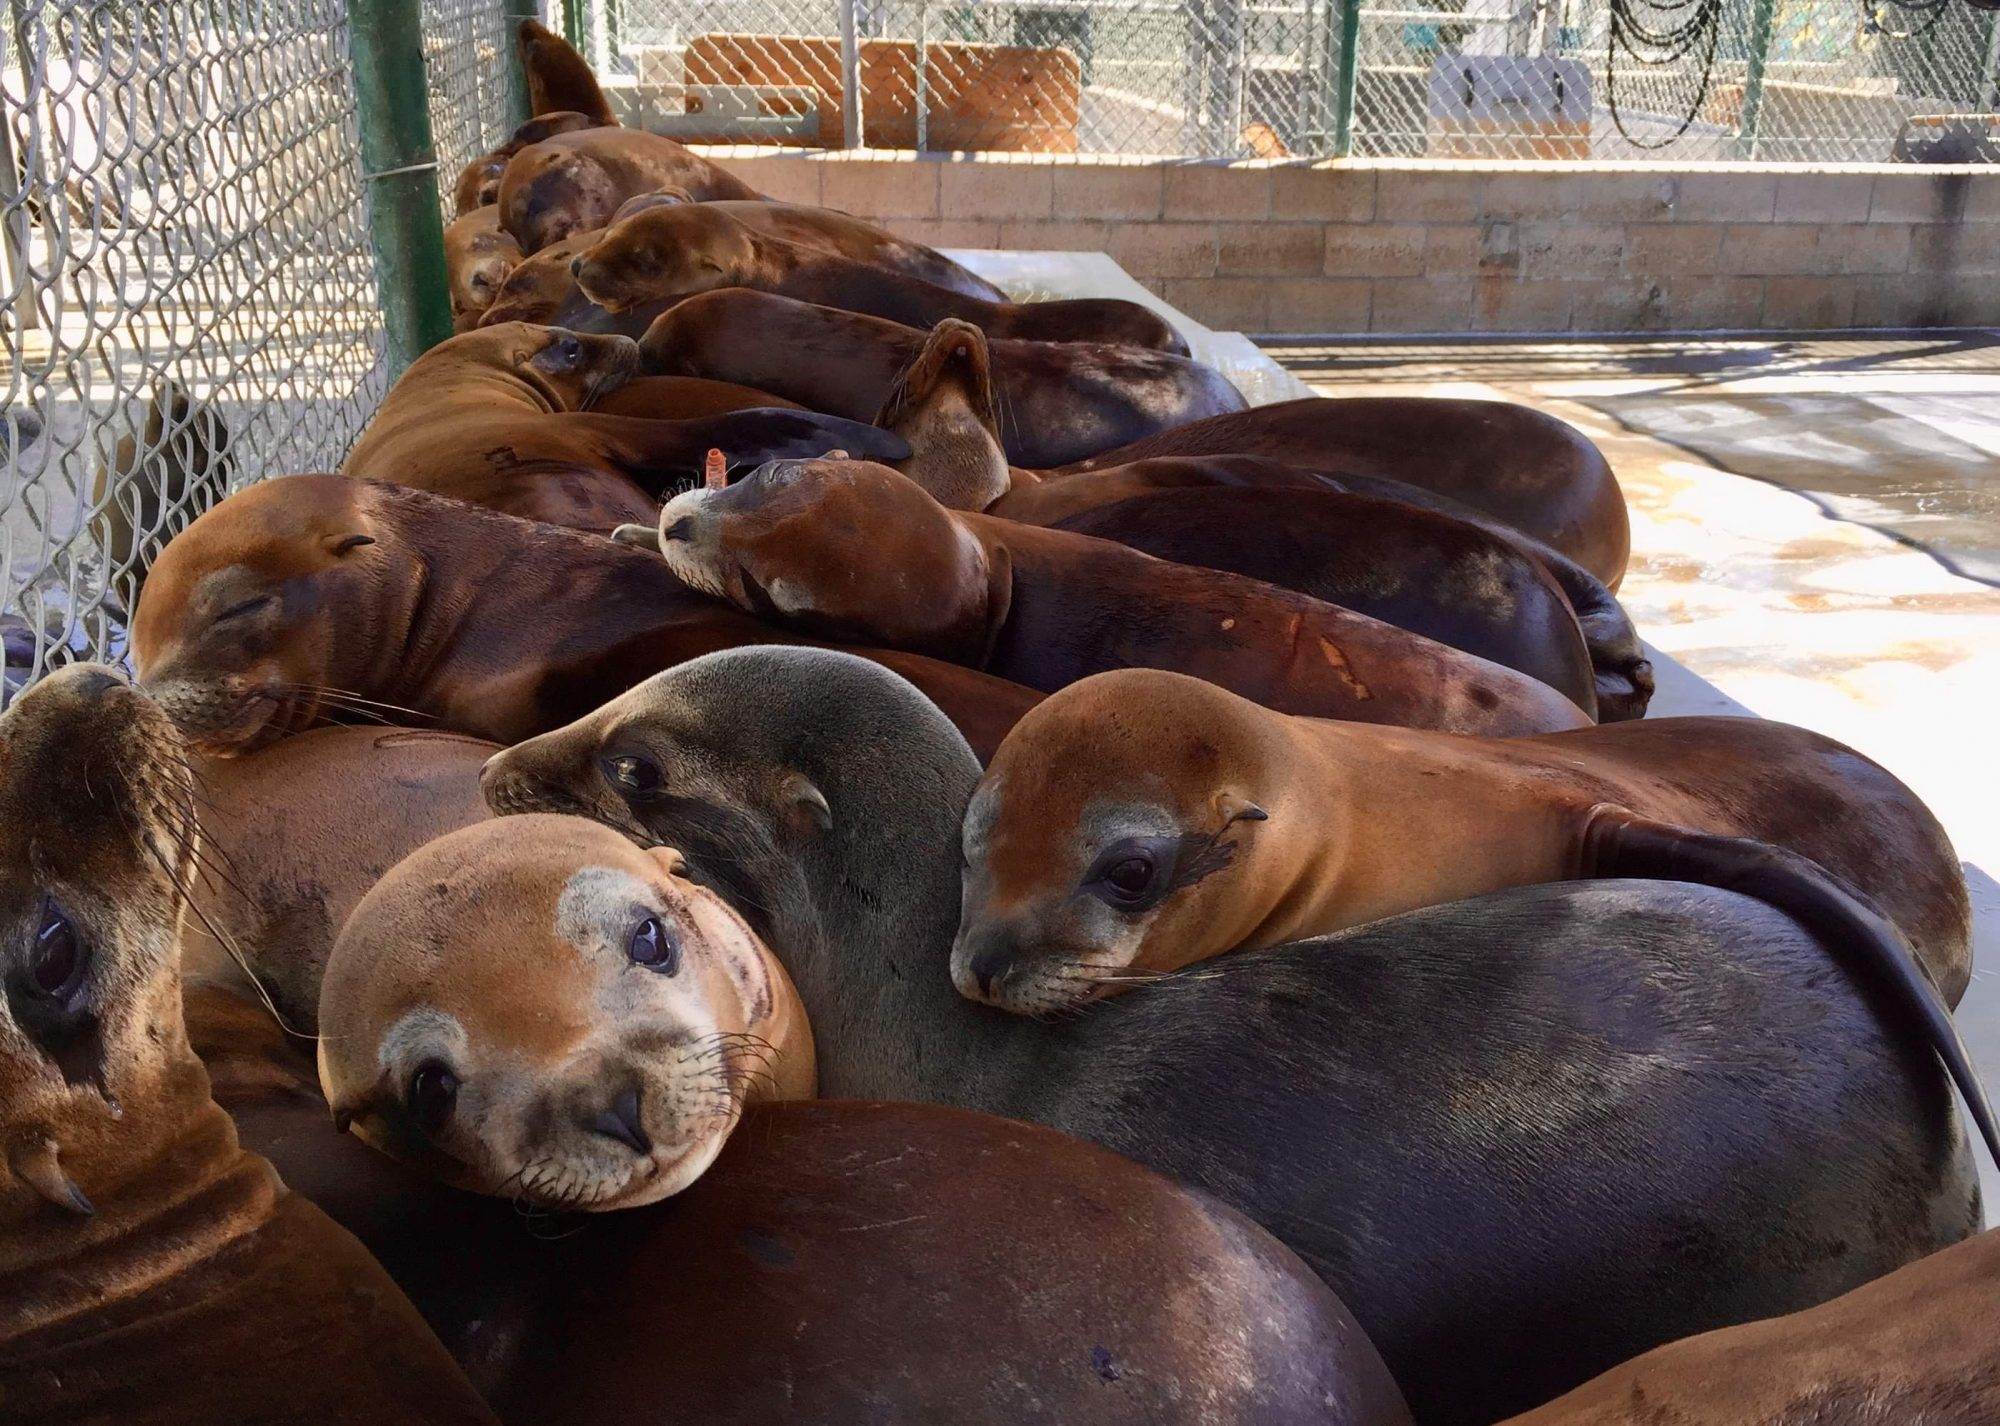 Animal Hospital That Rehabs Seals and Sea Lions May Close if $1M Isn't Raised by June